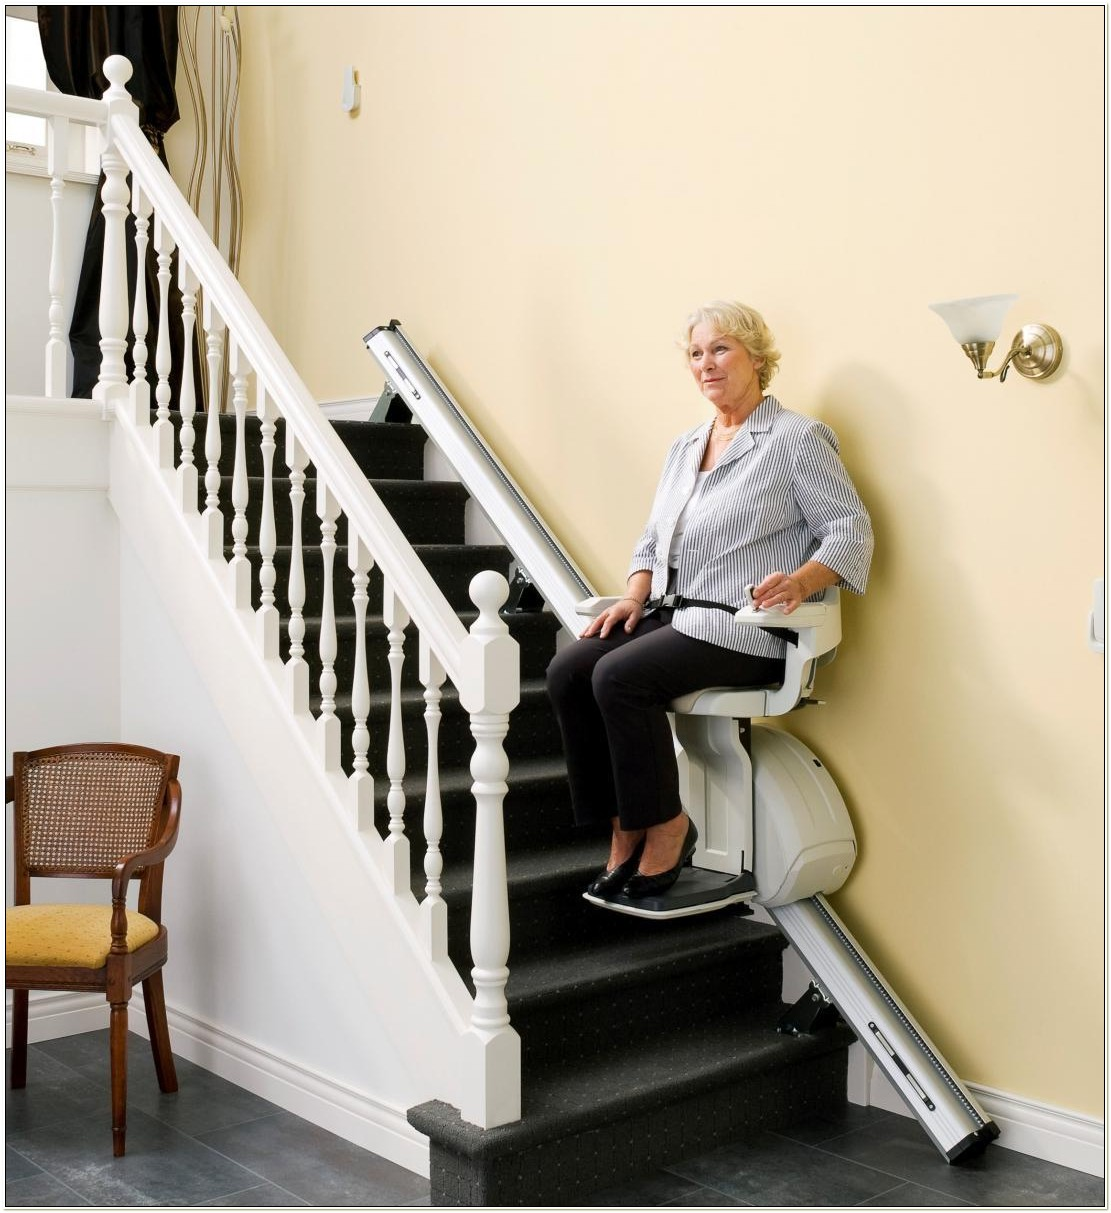 Power Stair Chair Lifts